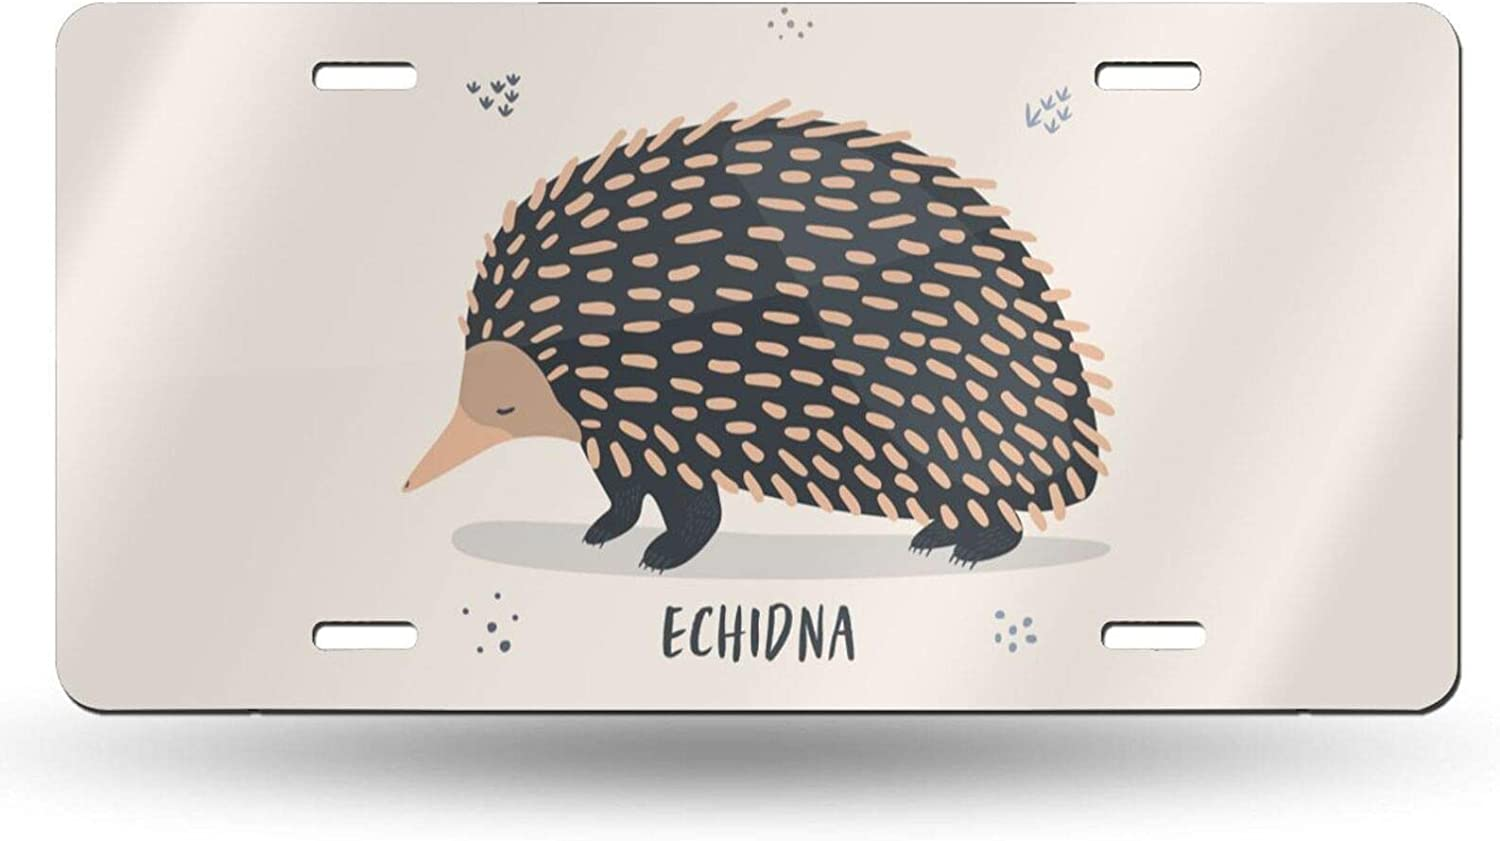 Outlet SALE Delerain License High quality new Plate Aluminum Sleepy Tag Car Me Echidna Cover